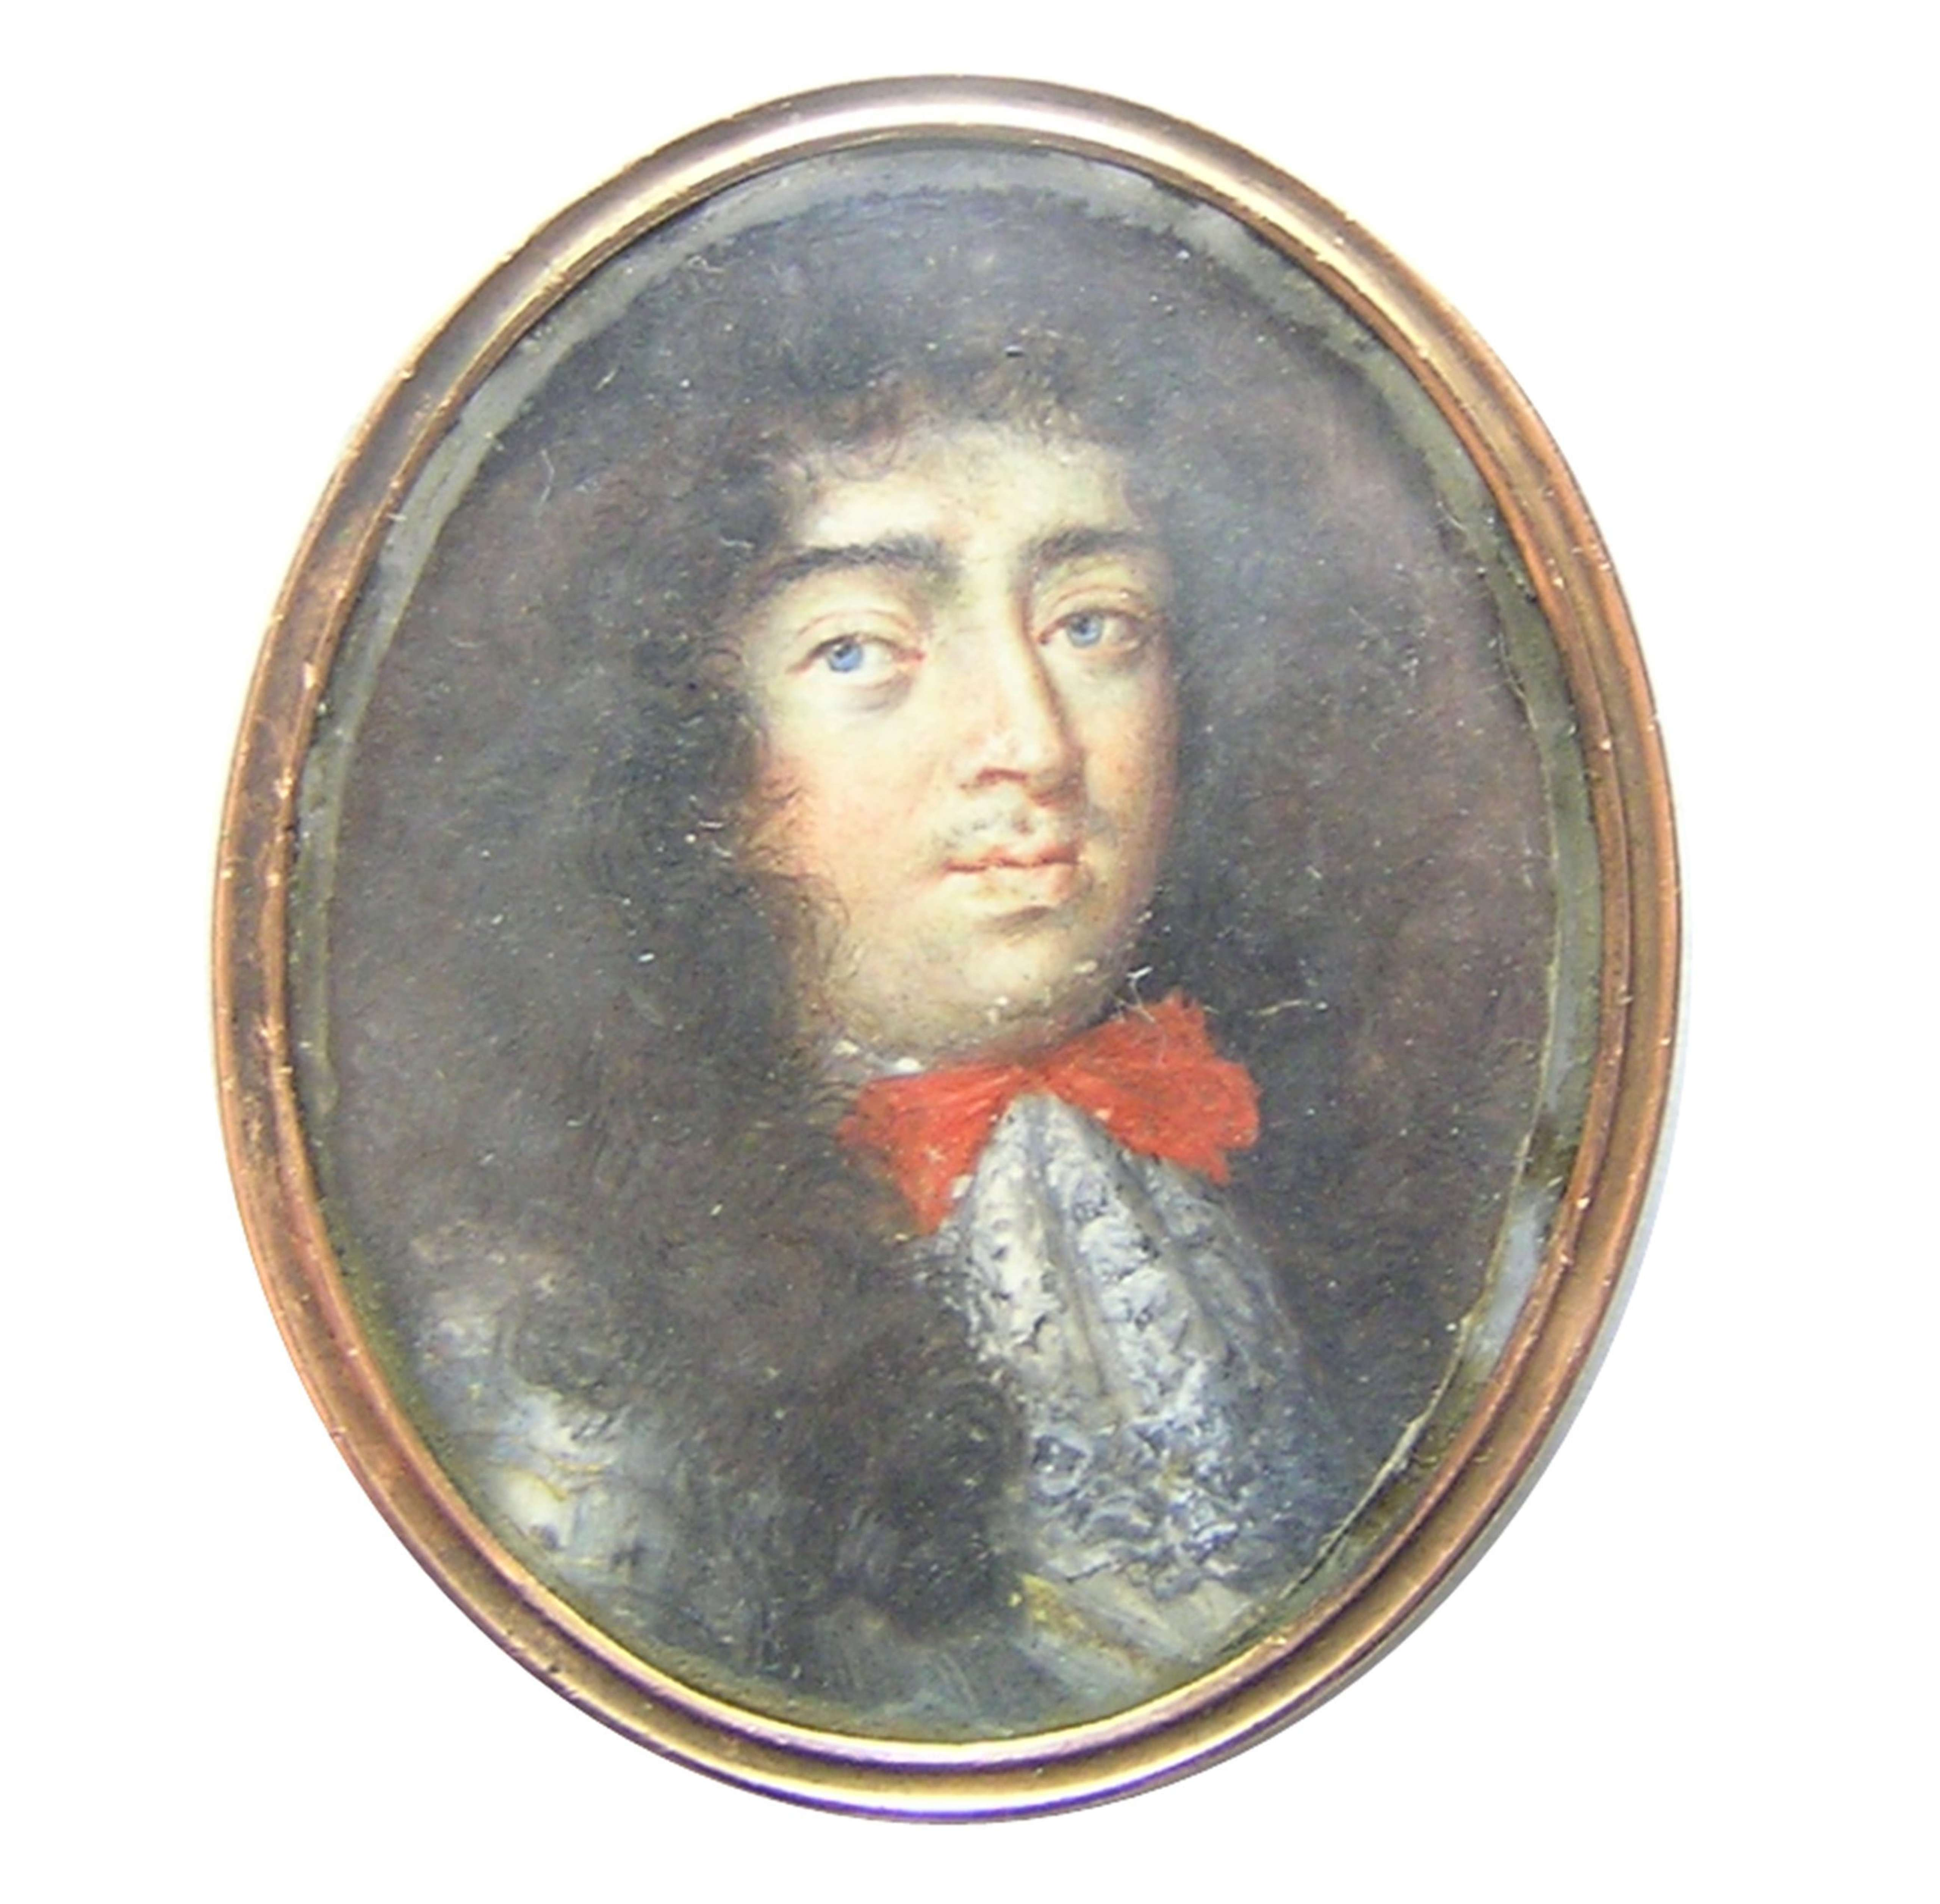 Portrait miniature on vellum and watercolours of King Louis XIV